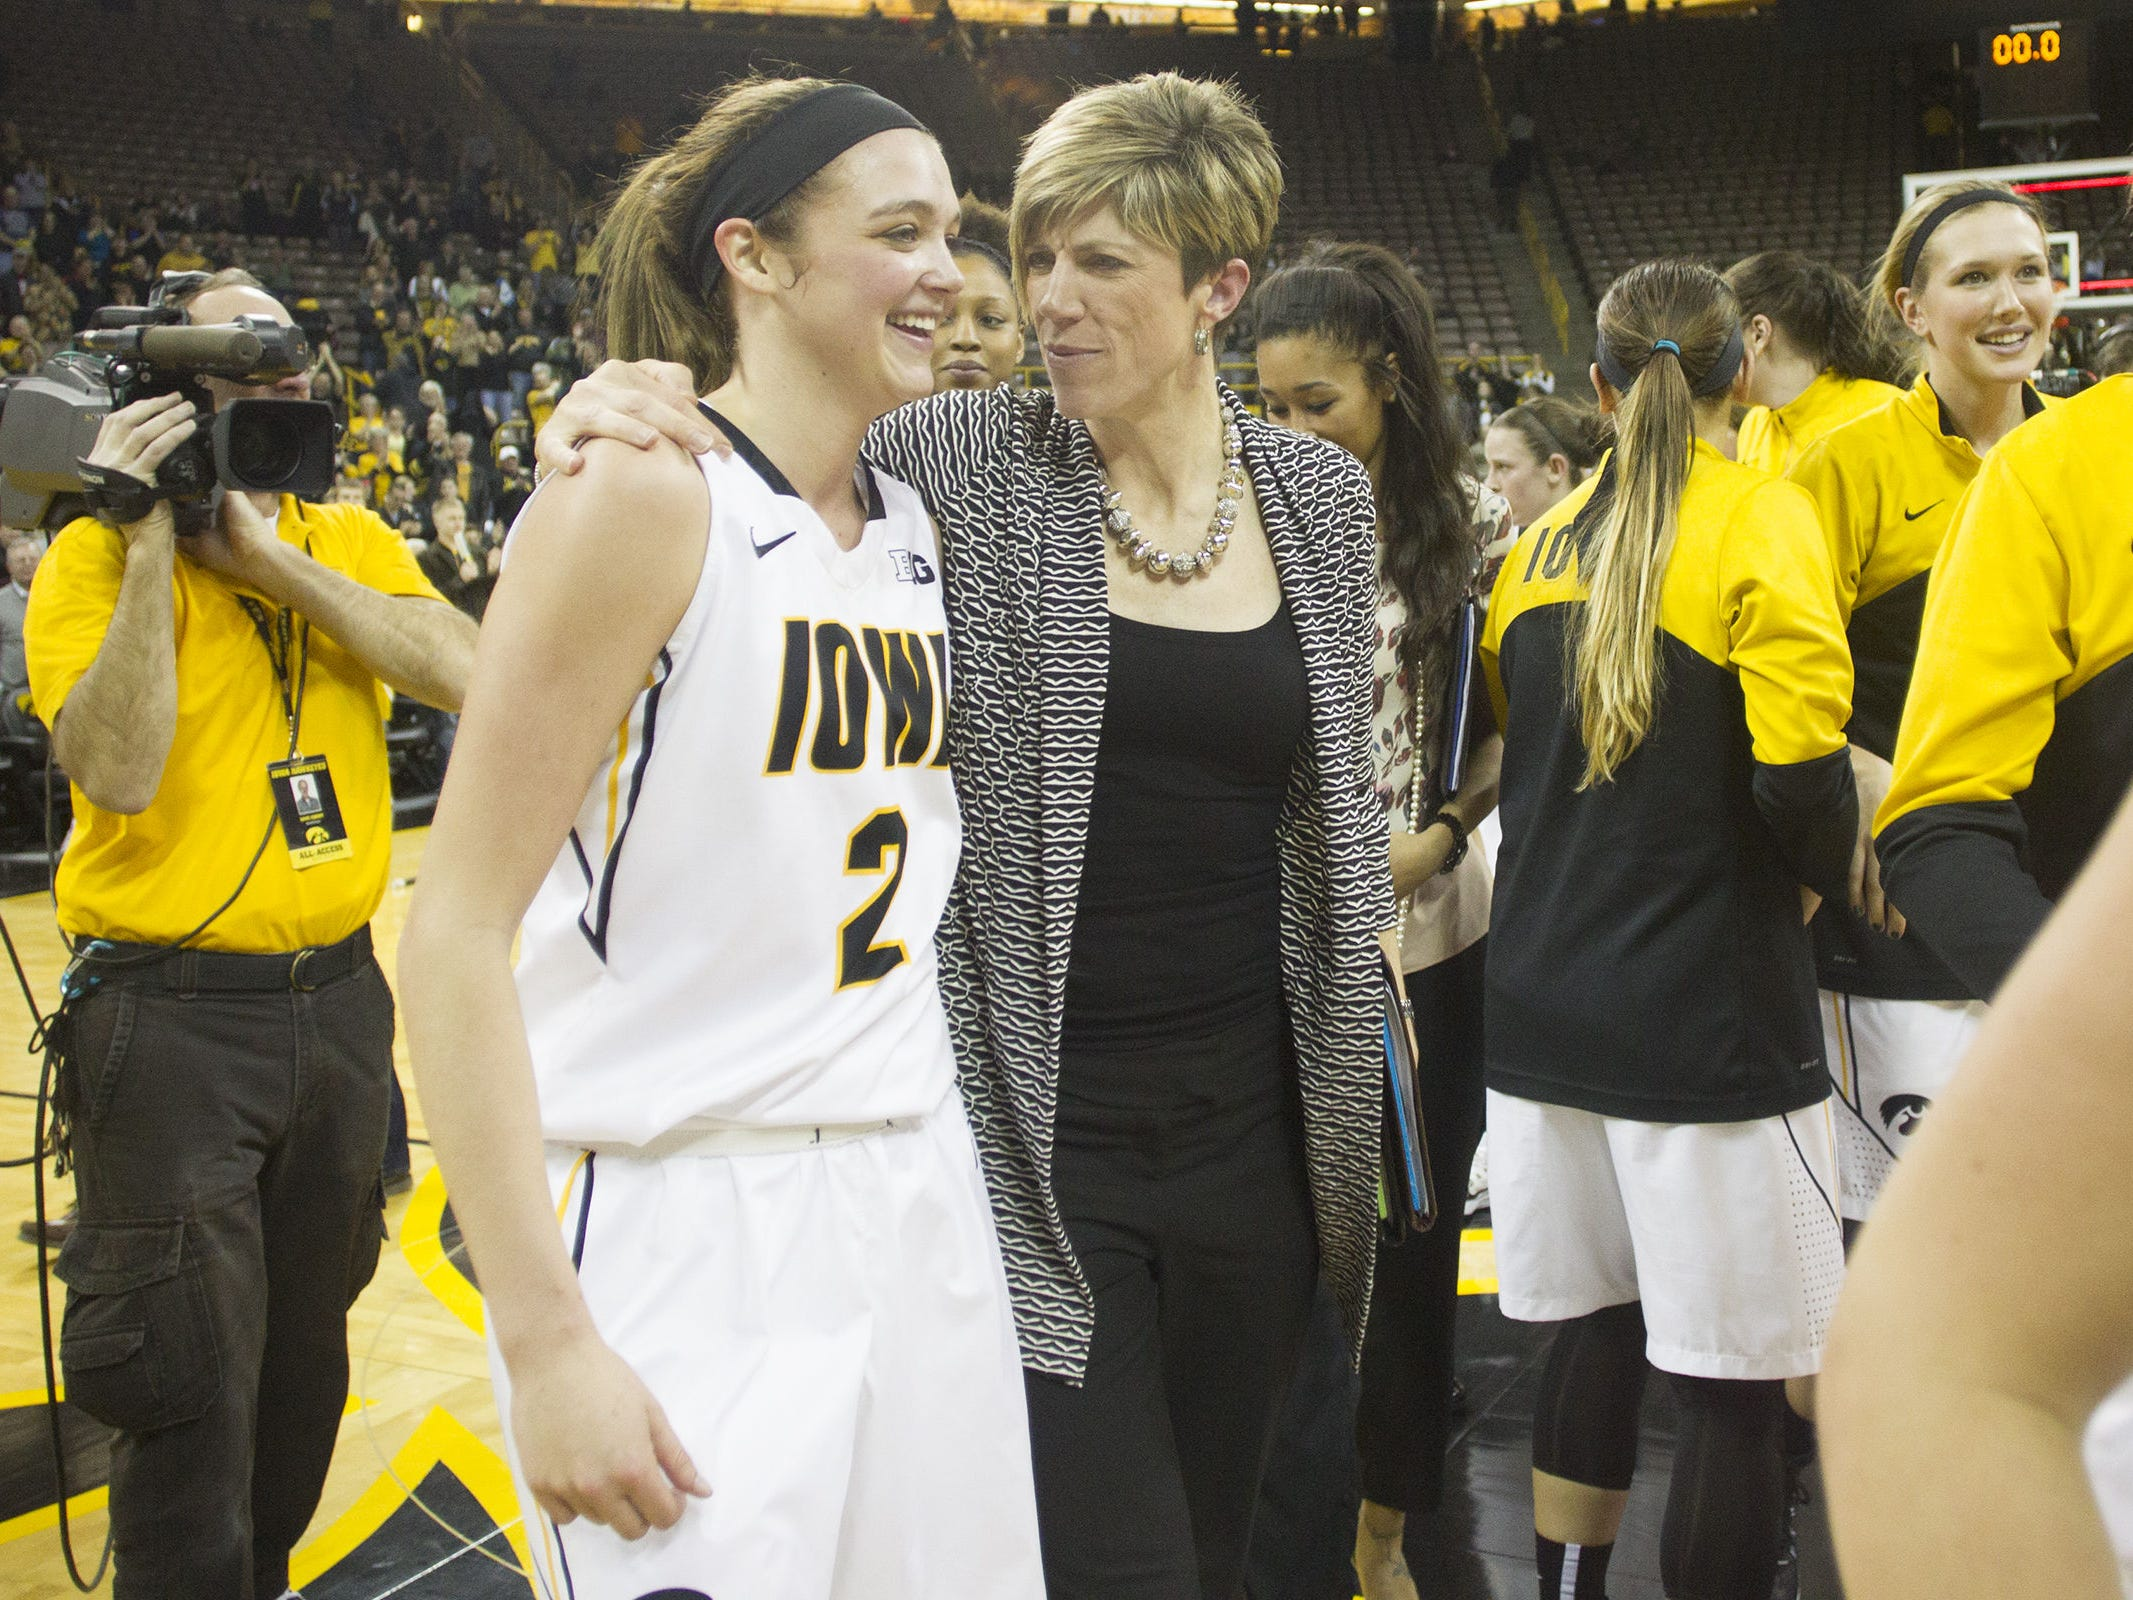 Iowa associate head coach Jan Jensen, right, went to the state girls' basketball tournament in 1987 at EHK. Ally Disterhoft, left, played for Iowa City West at state, winning a title in 2012.